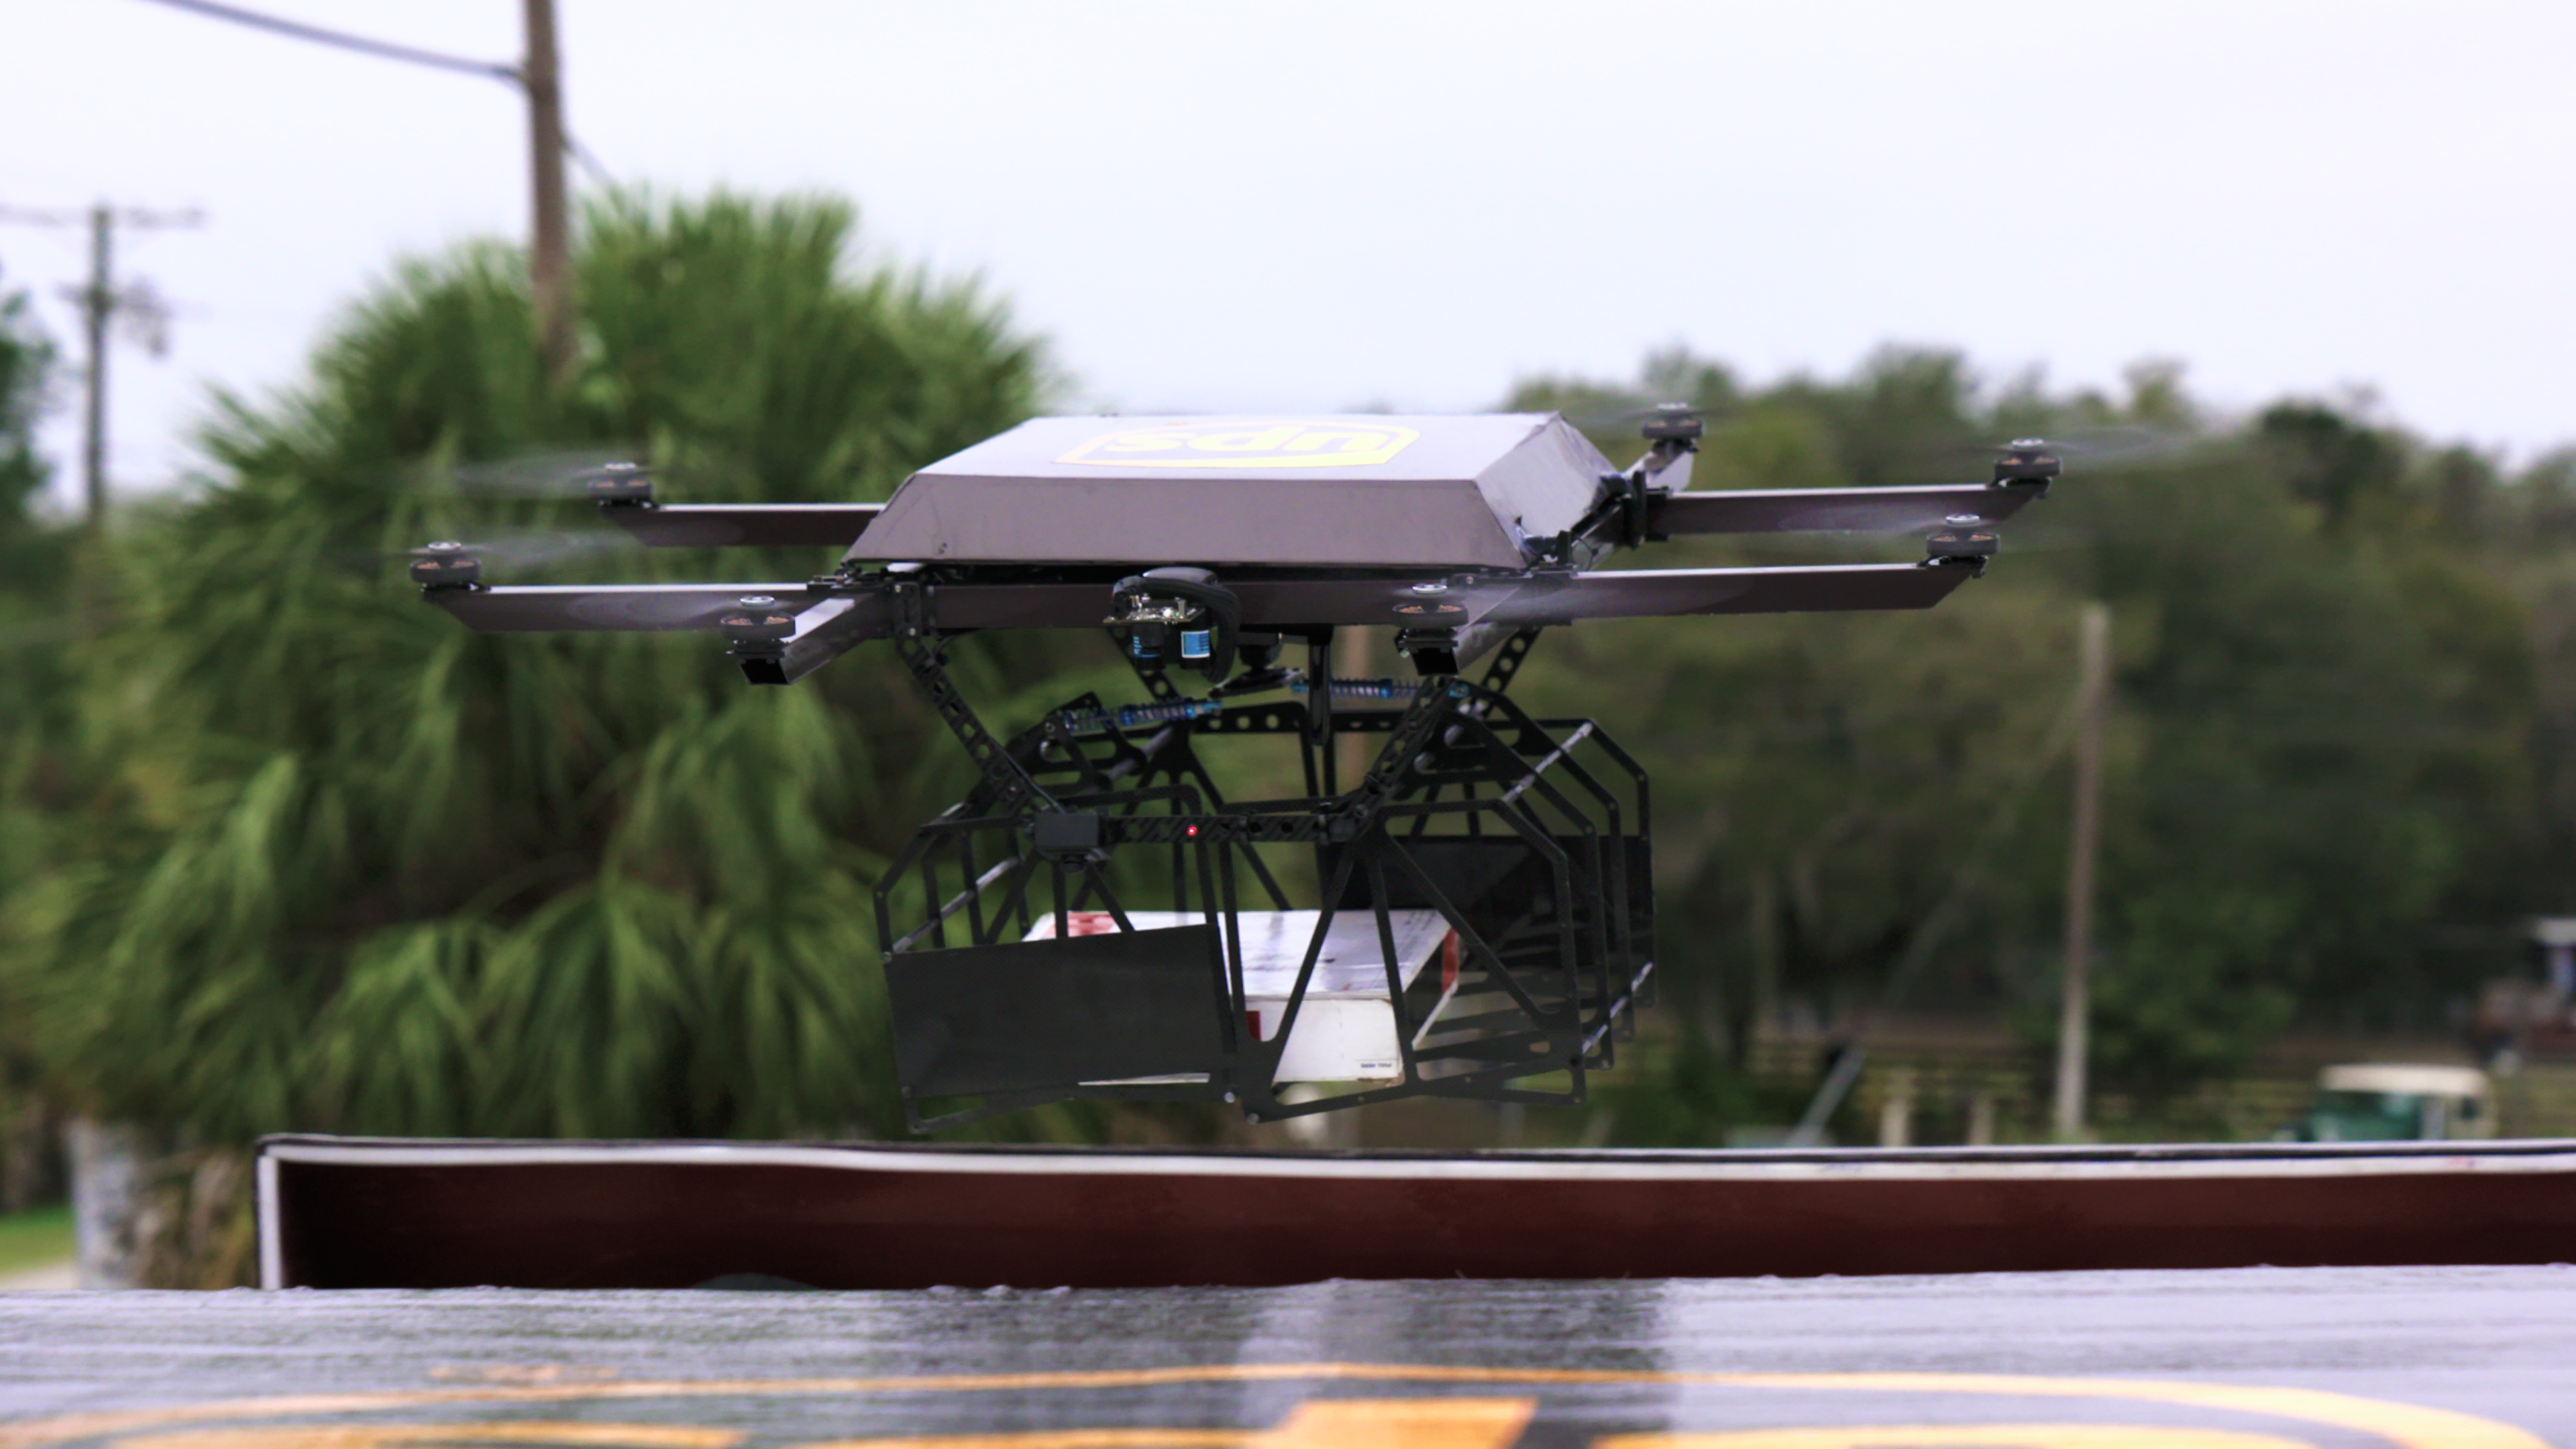 UPS tests UAV launched from delivery truck's roof